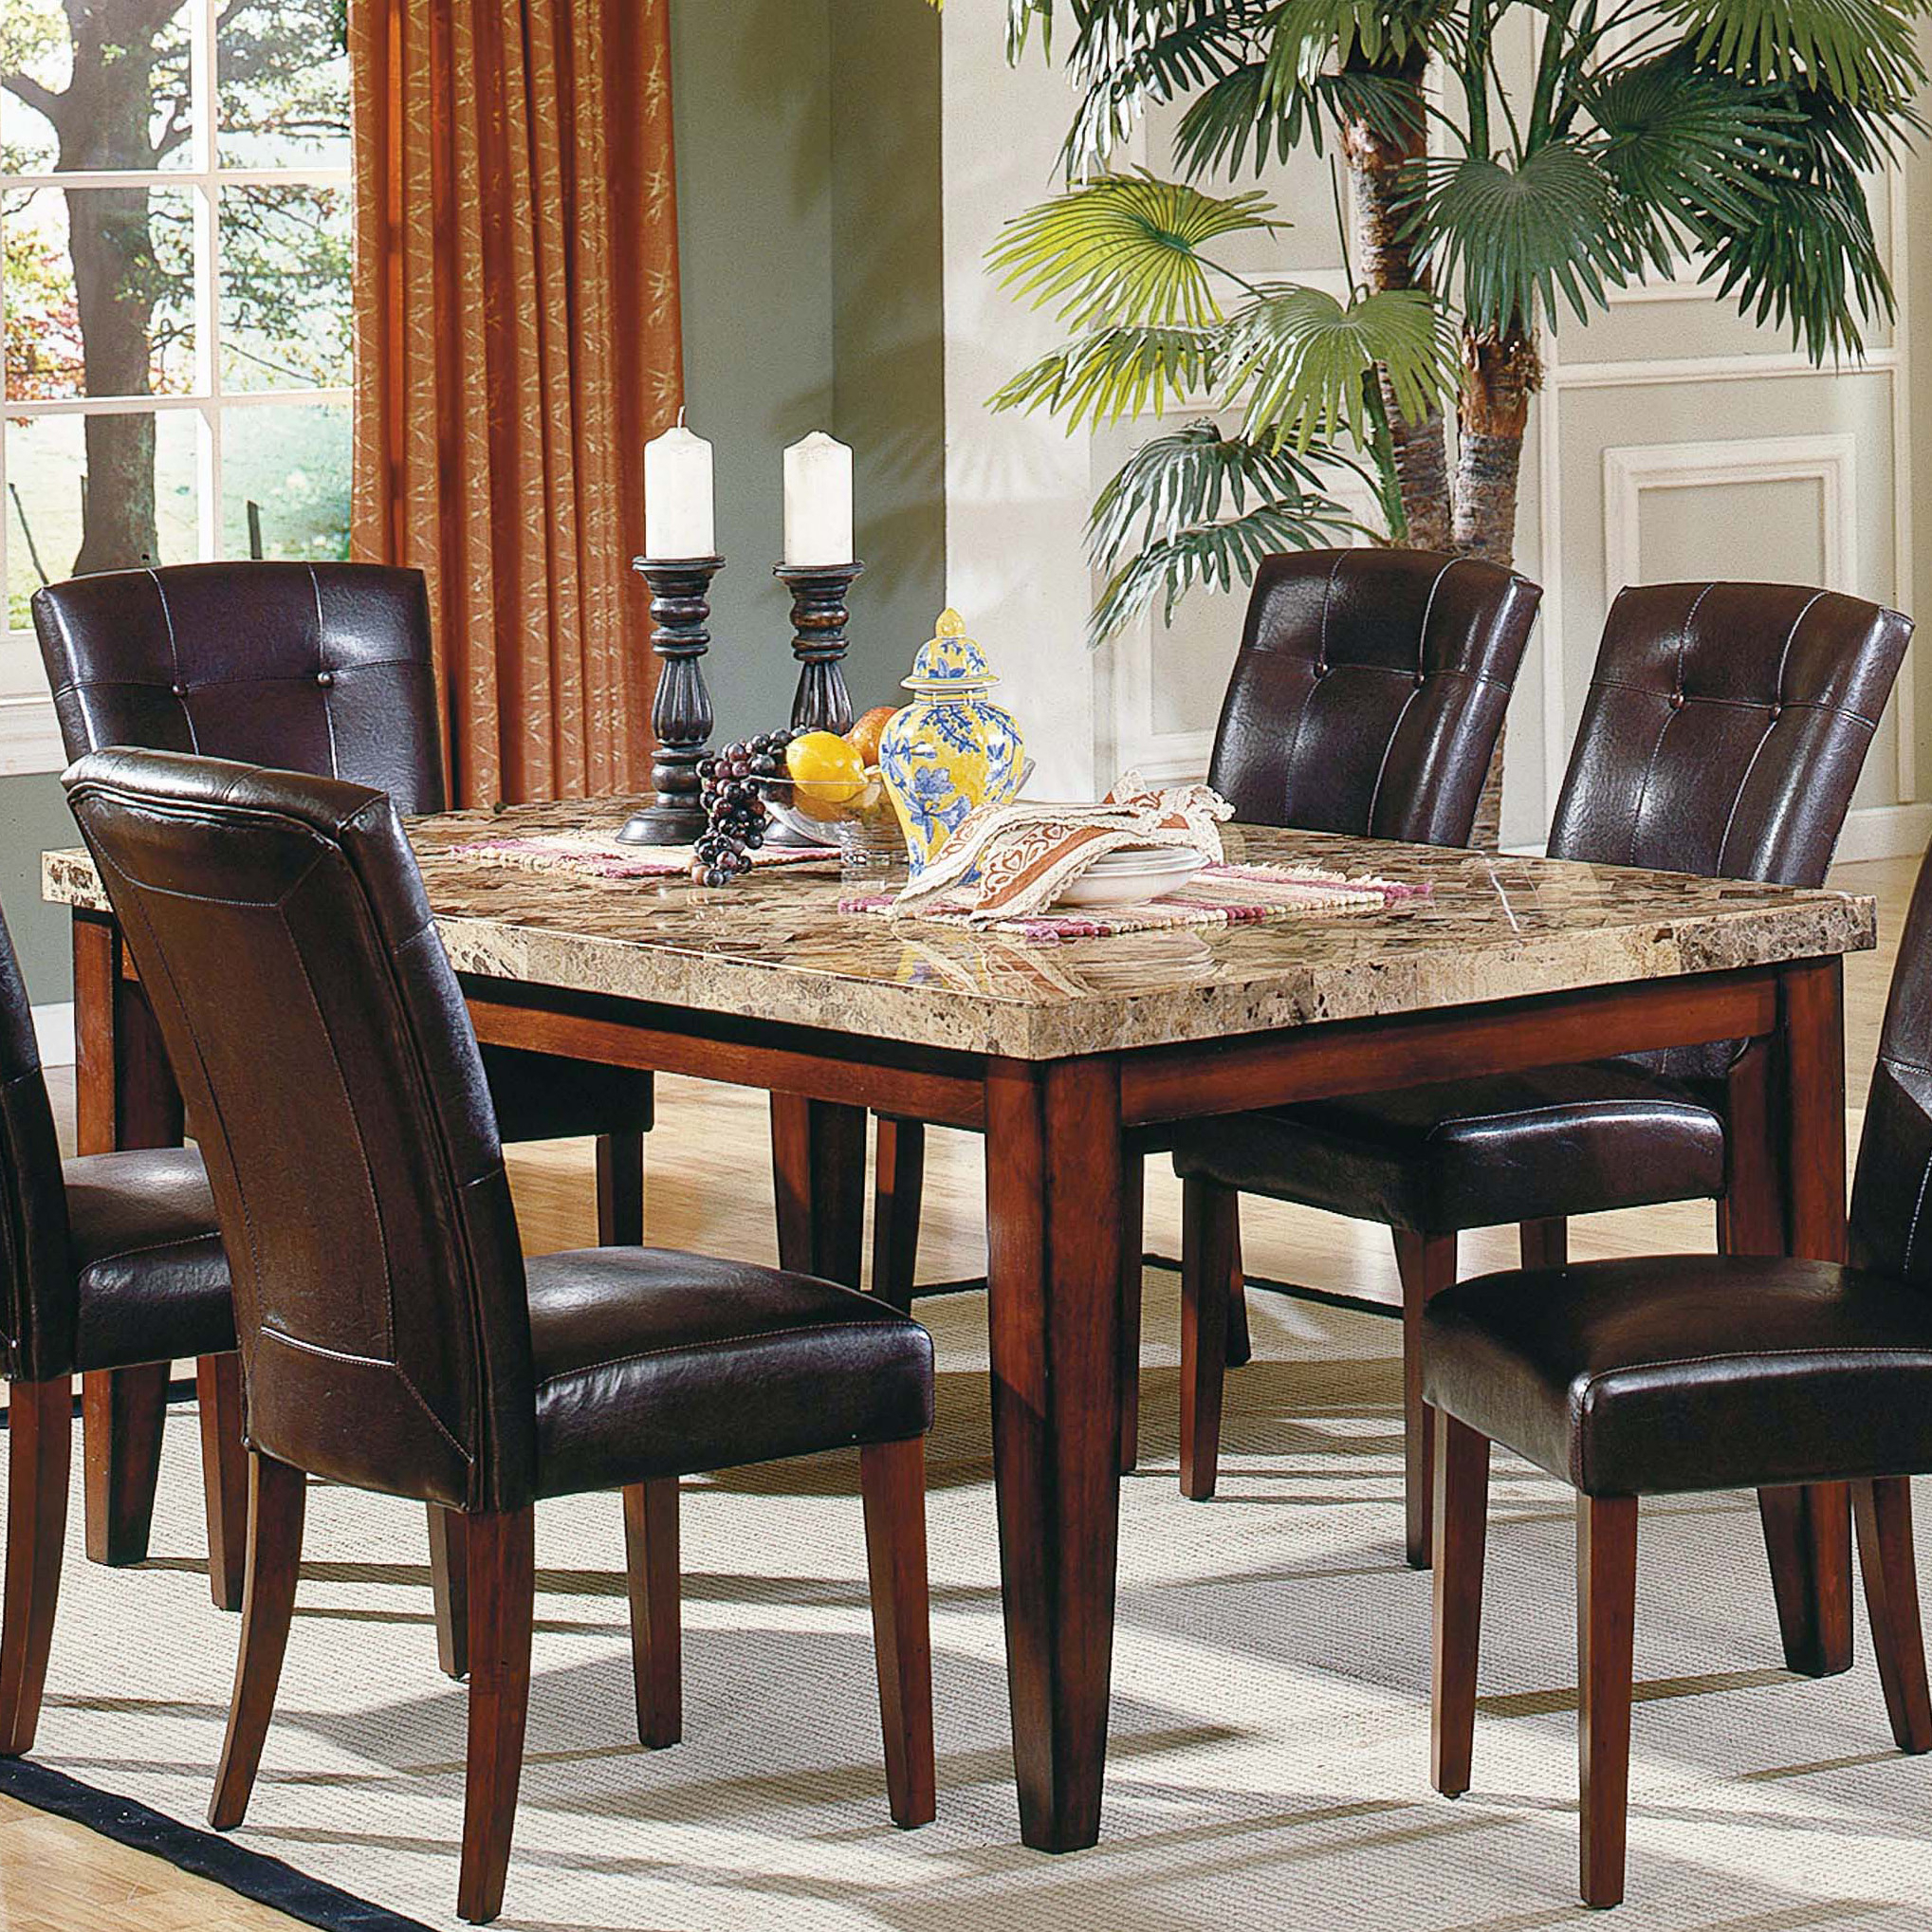 Steve Silver Montibello Marble Top Rectangular Dining Intended For 2017 49'' Dining Tables (View 10 of 15)